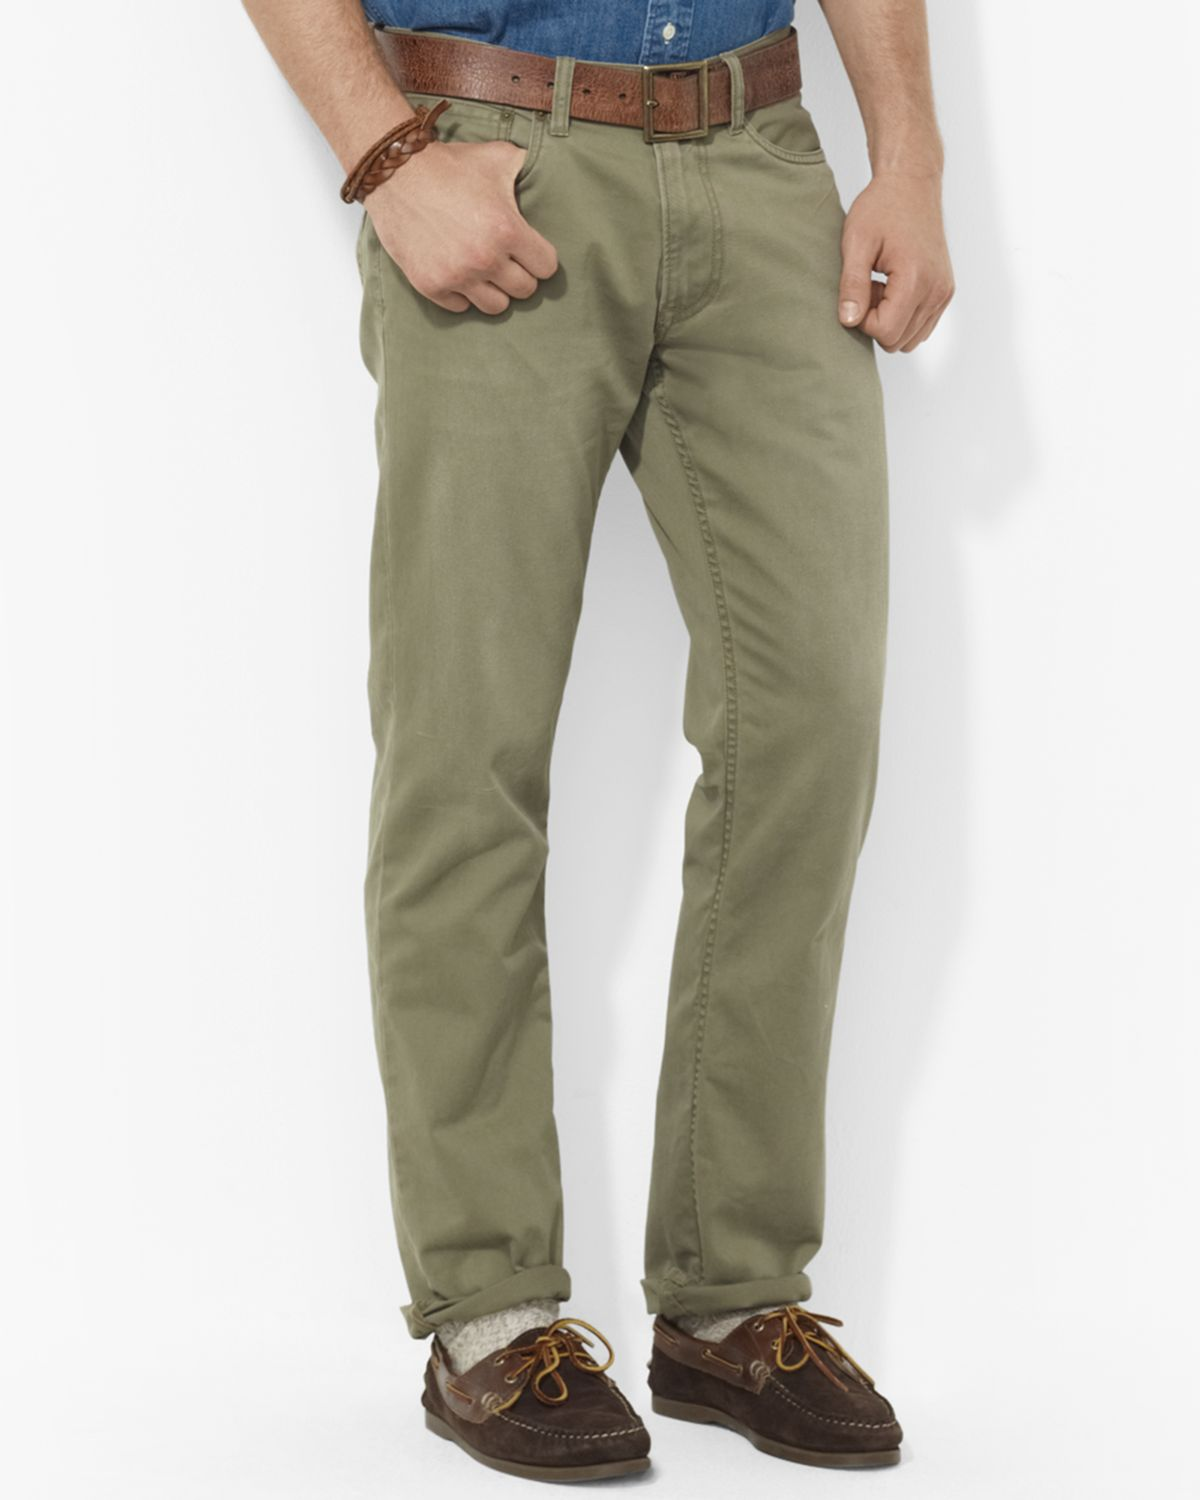 a6e6055fea5712 Polo Ralph Lauren Straight-fit Five-pocket Chino Pant in Green for ...